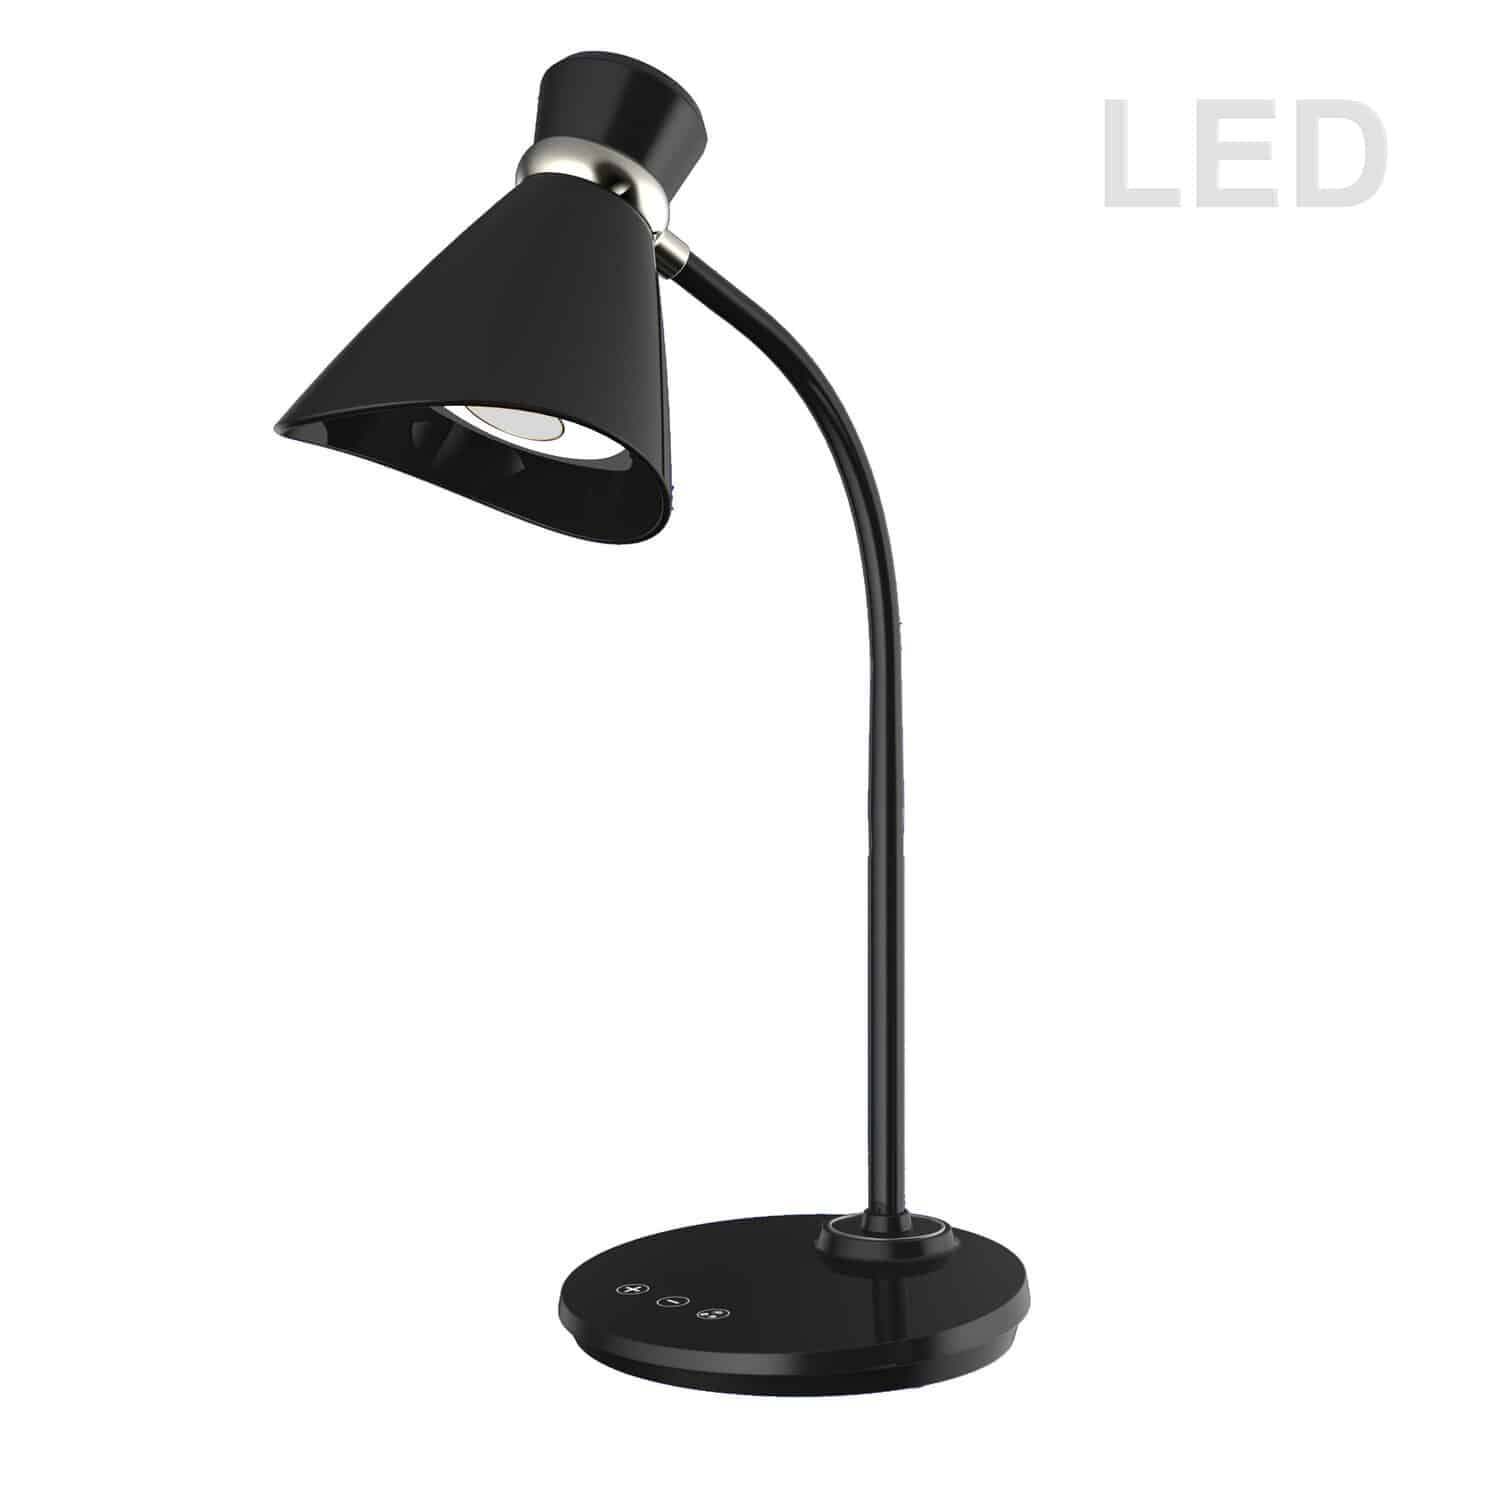 6W LED Desk Lamp, Black Finish